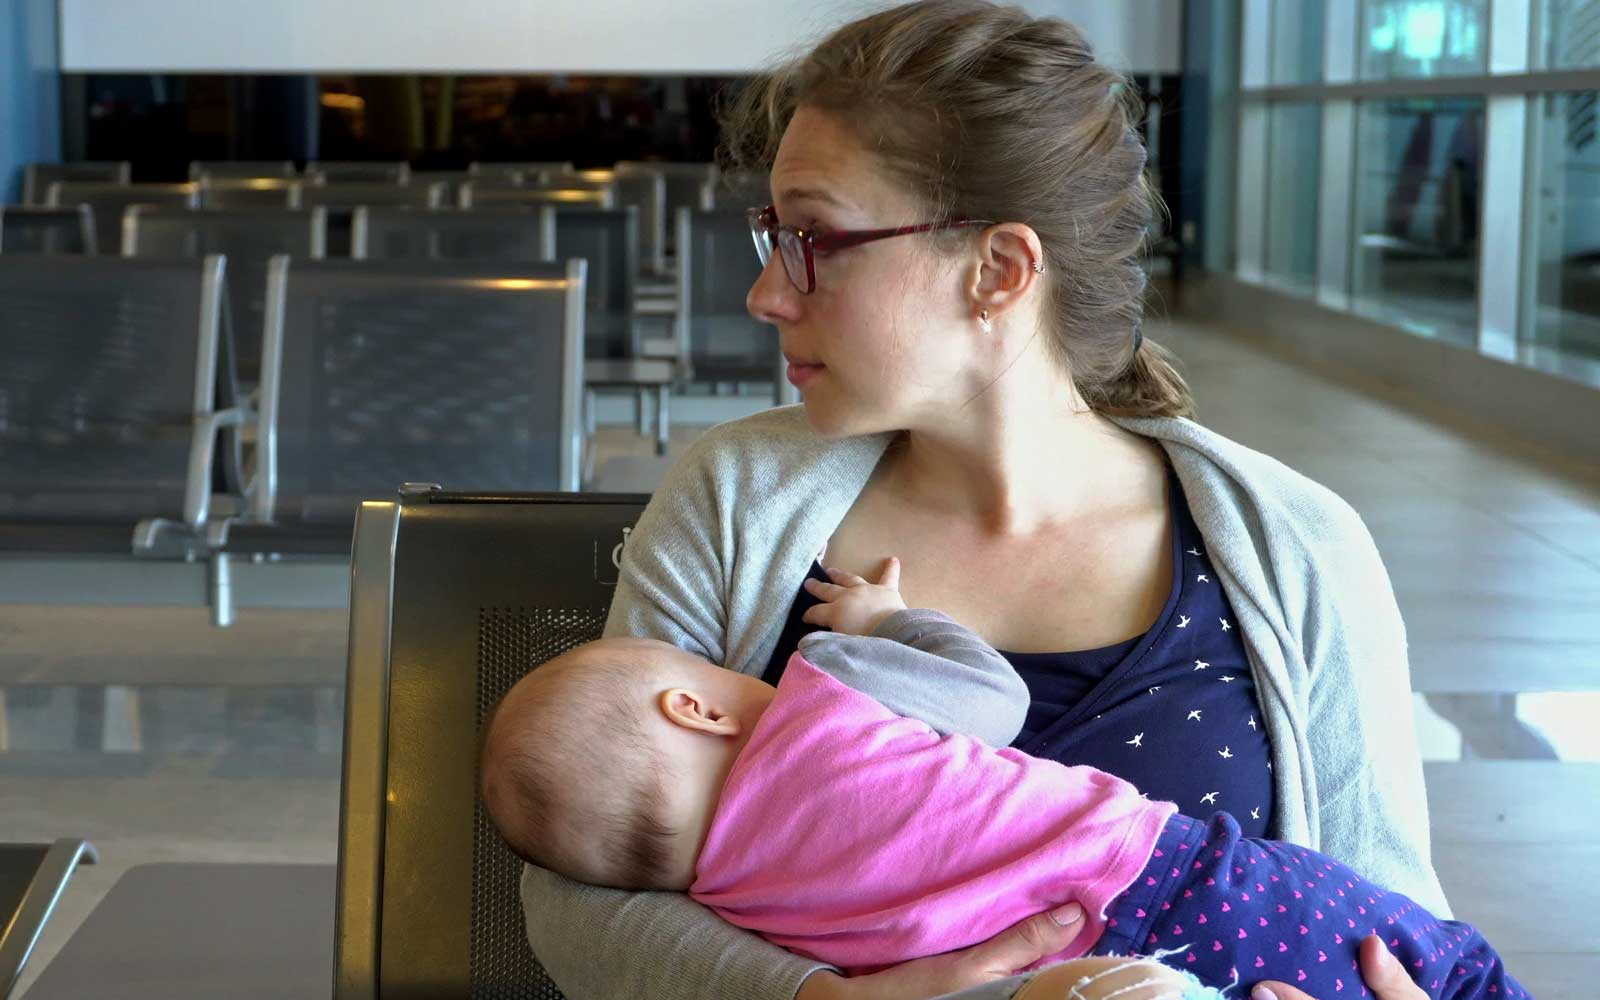 A Woman Breastfeeding her Child at the Airport